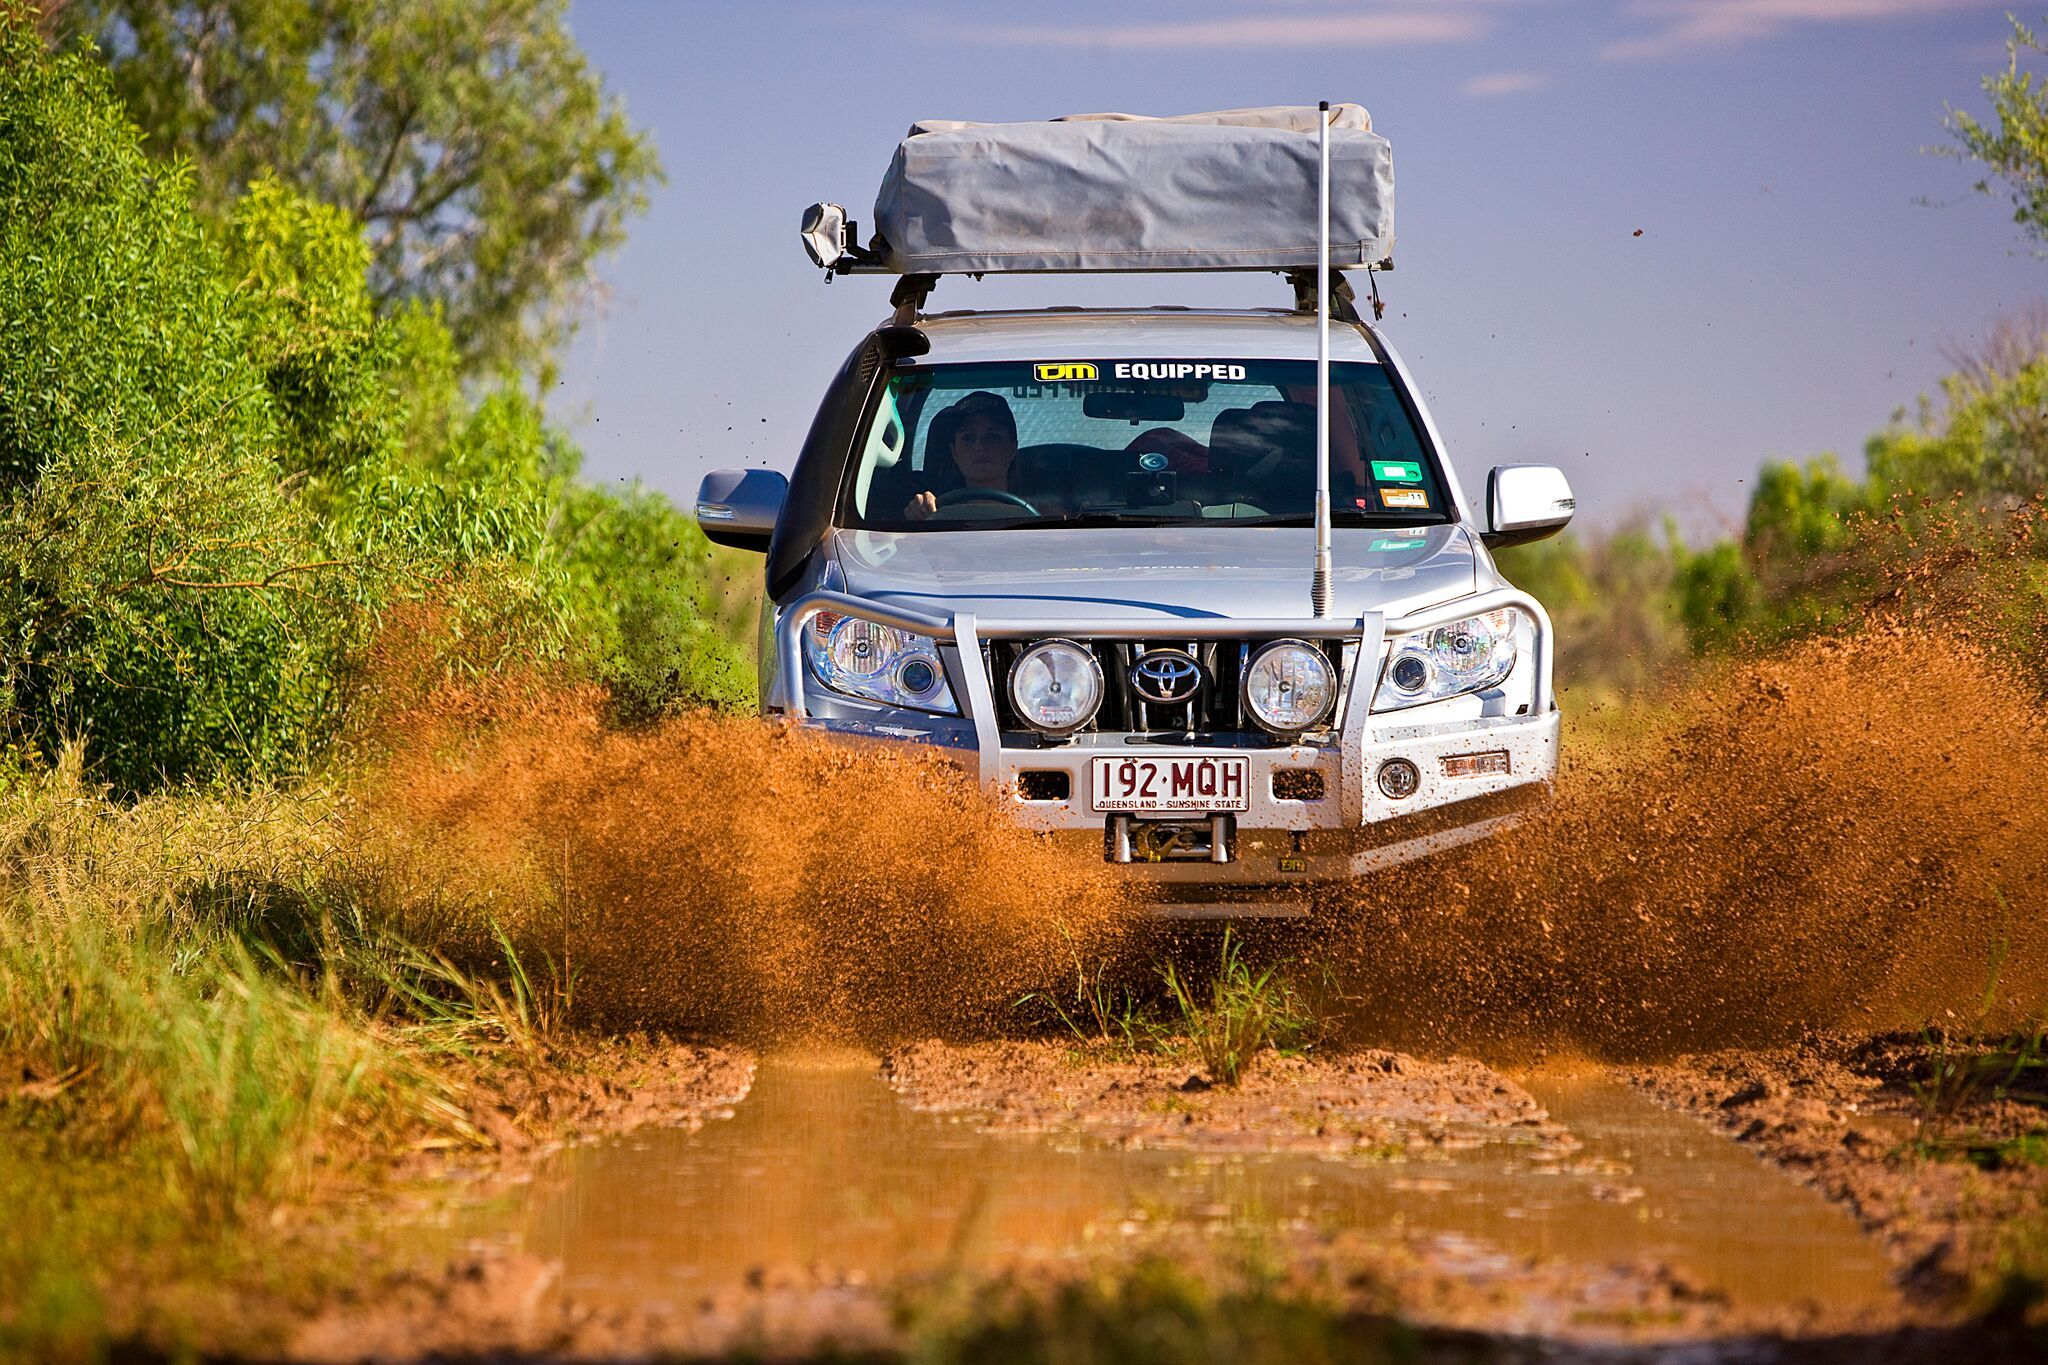 At Offroadtents We Have The BEST Accessories Car Camping Gear And Roof Top Tents From TJM All Of Equipment For Sale Is Ideal Your